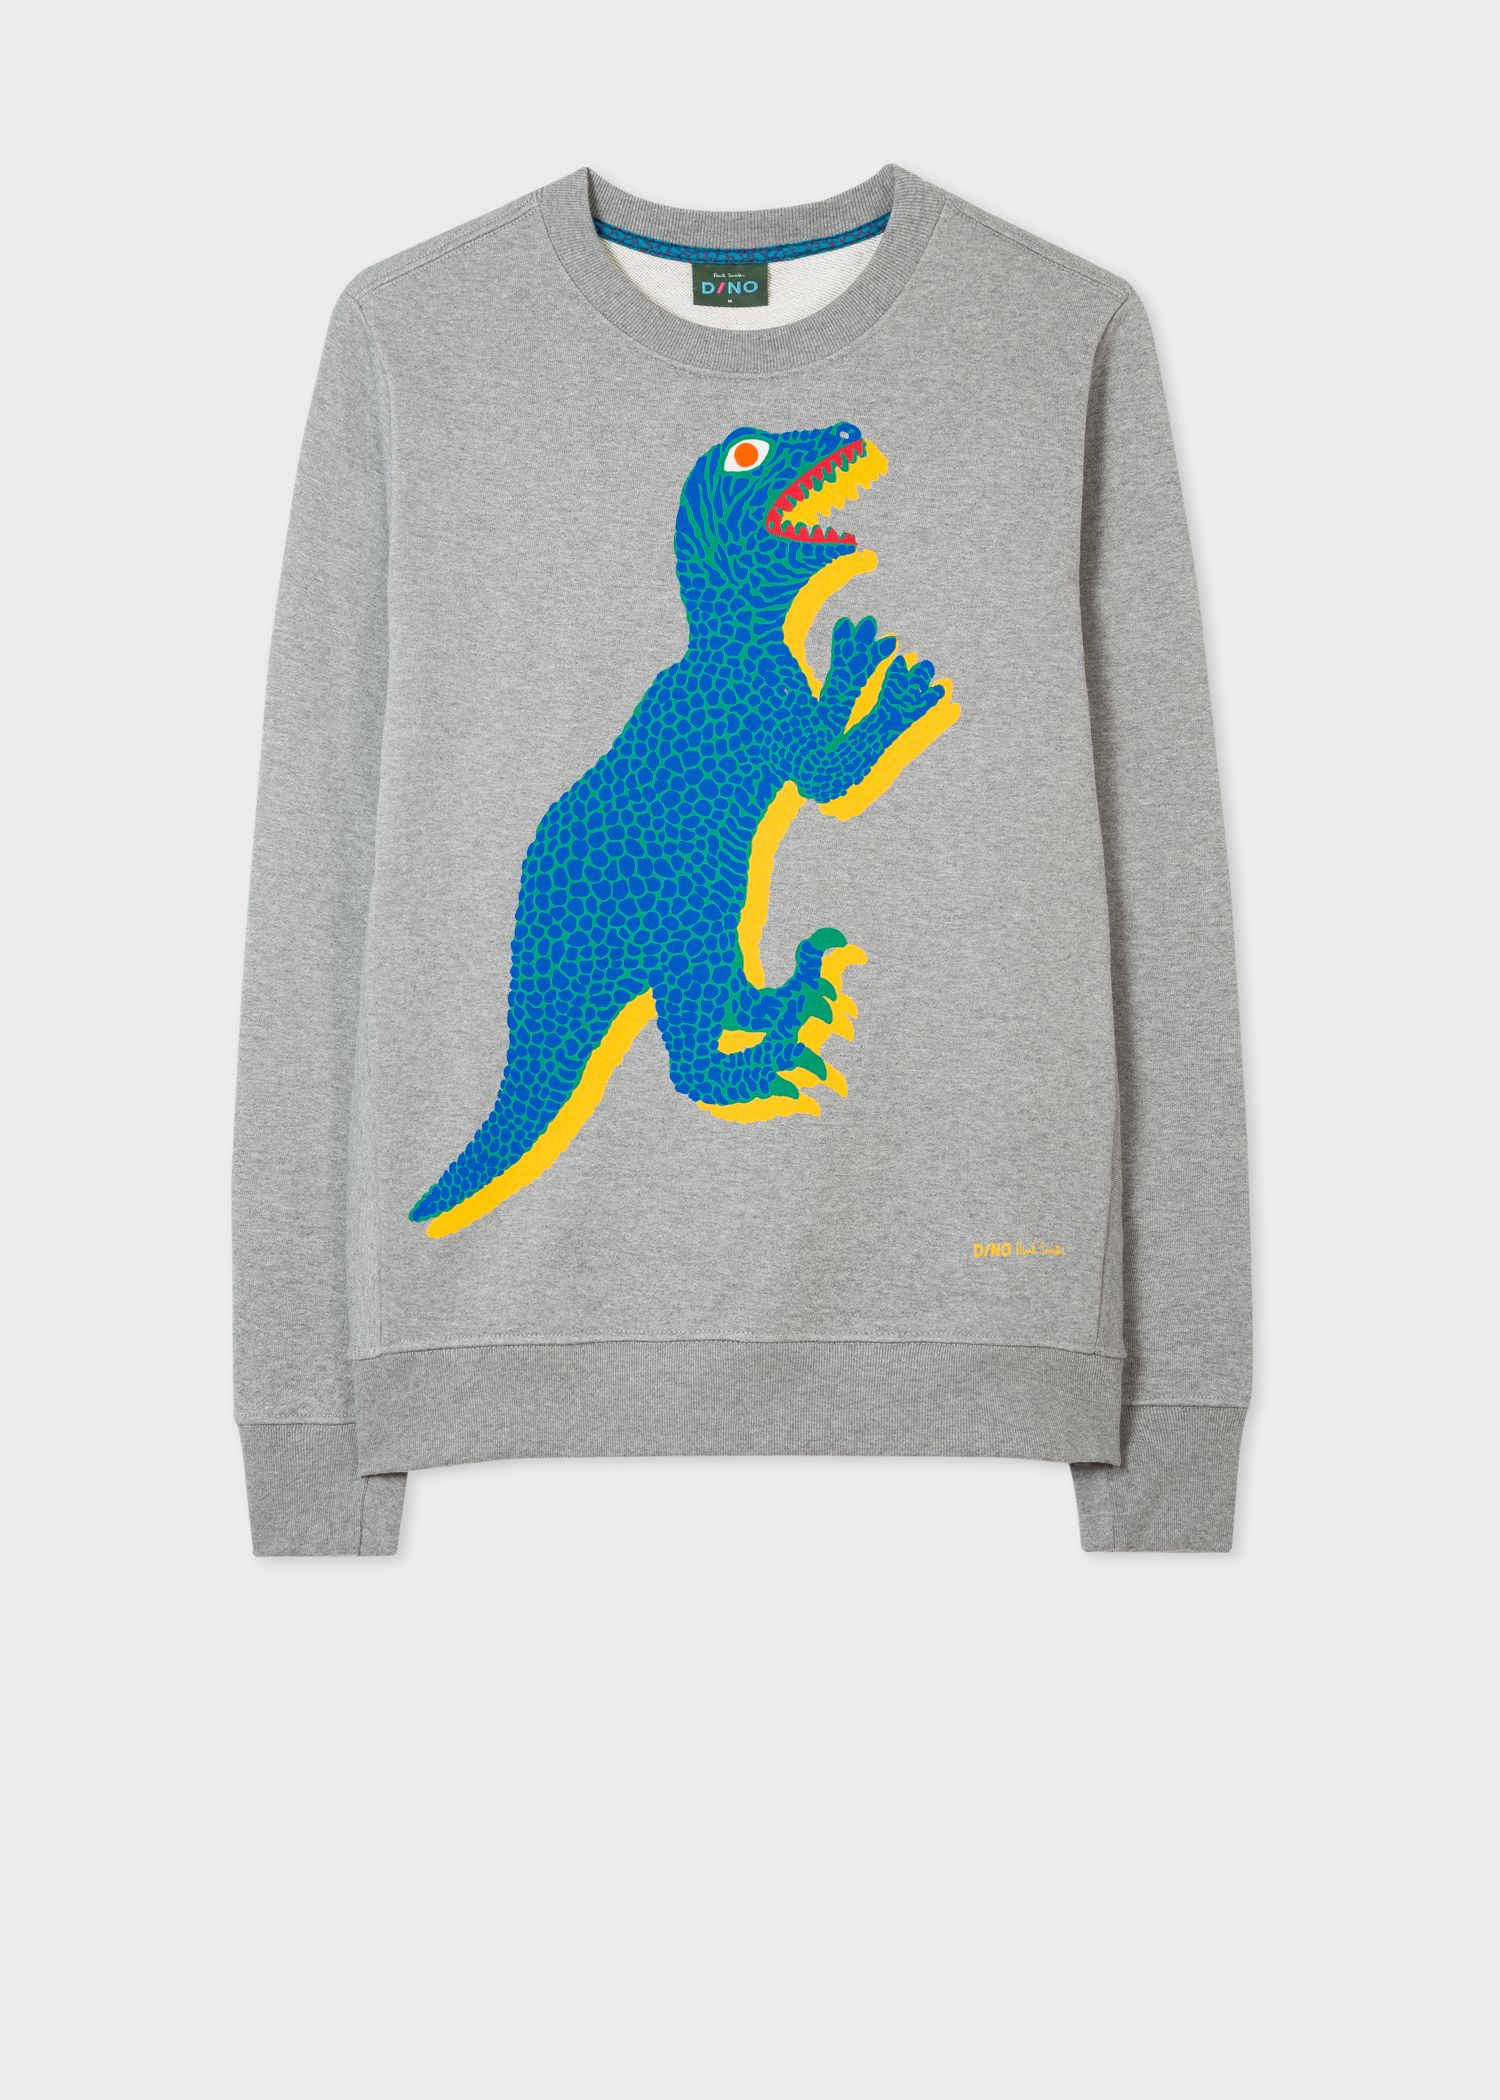 a0293760f2c00 Front View - Men s Grey Organic-Cotton Large Dino Sweatshirt Paul Smith